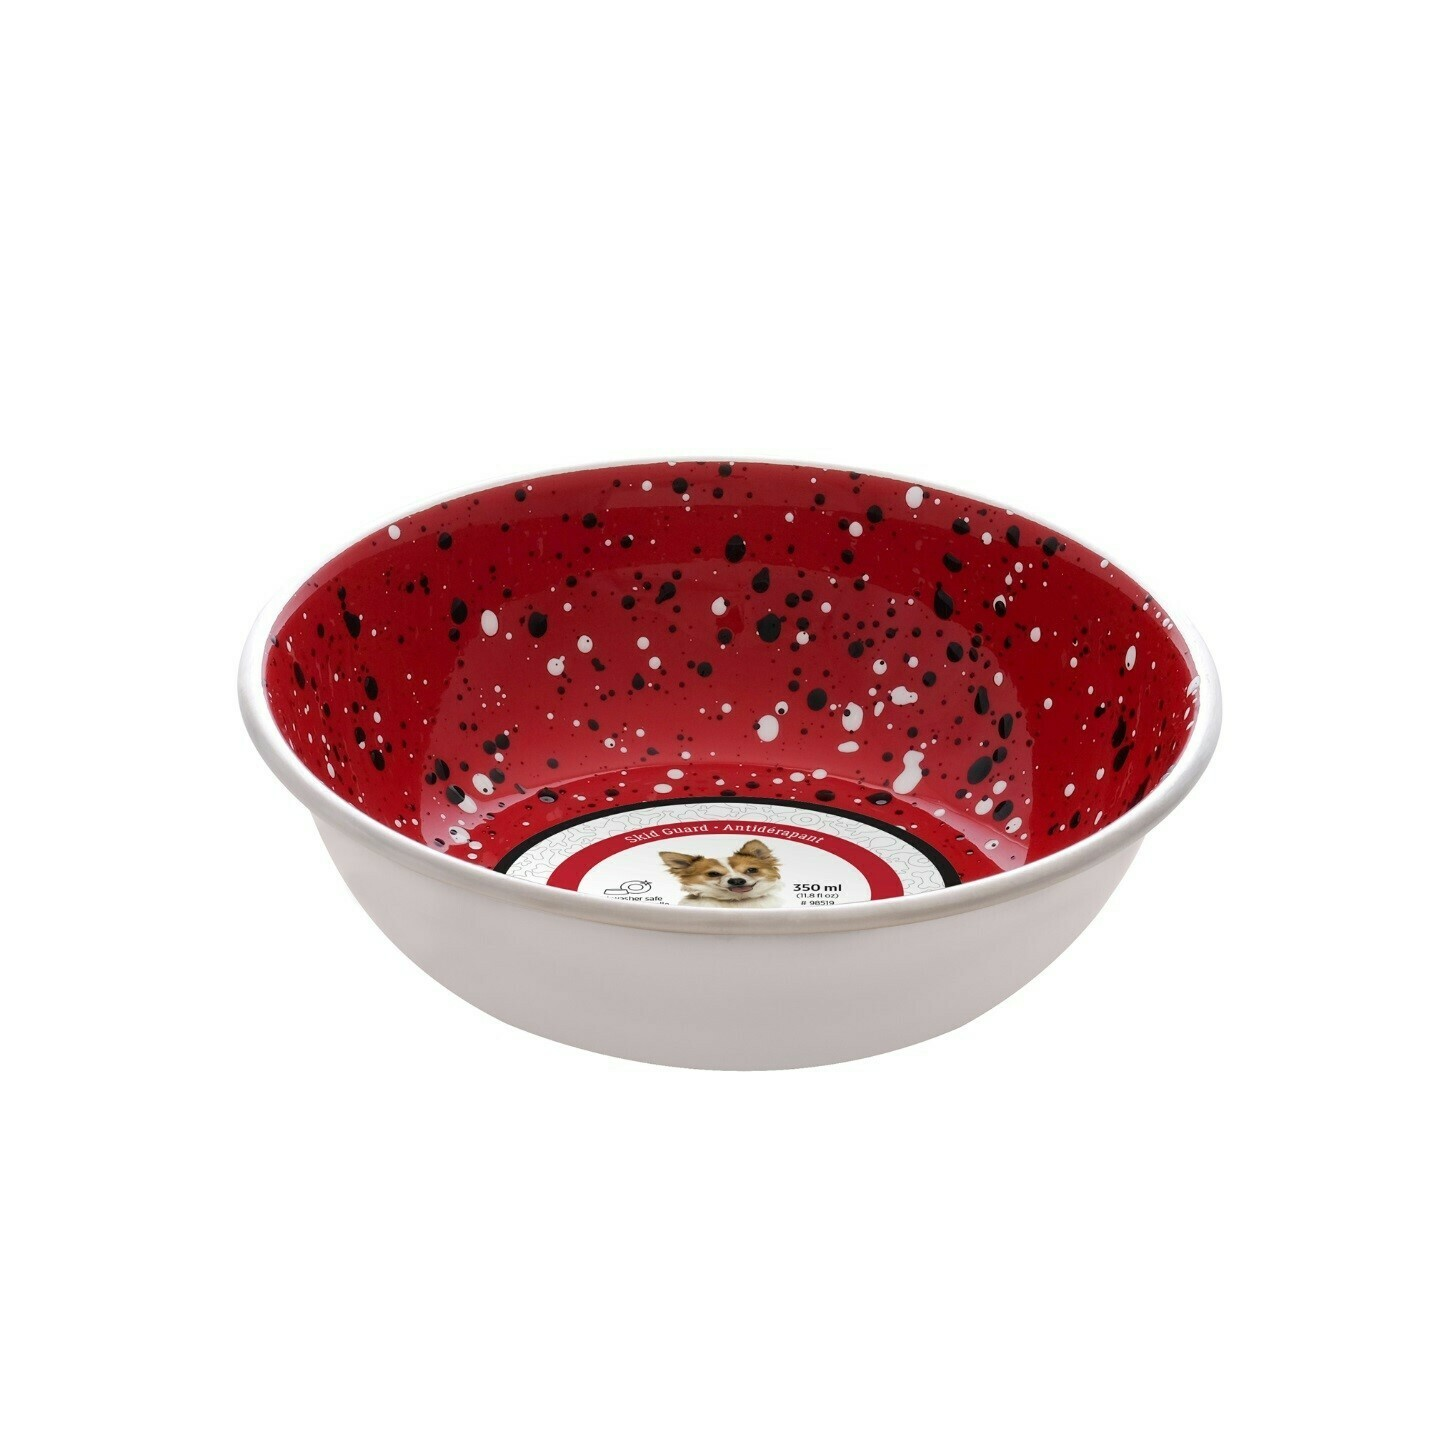 DOG IT STAINLESS STEEL BOWL RED SPECKLE 350ML.